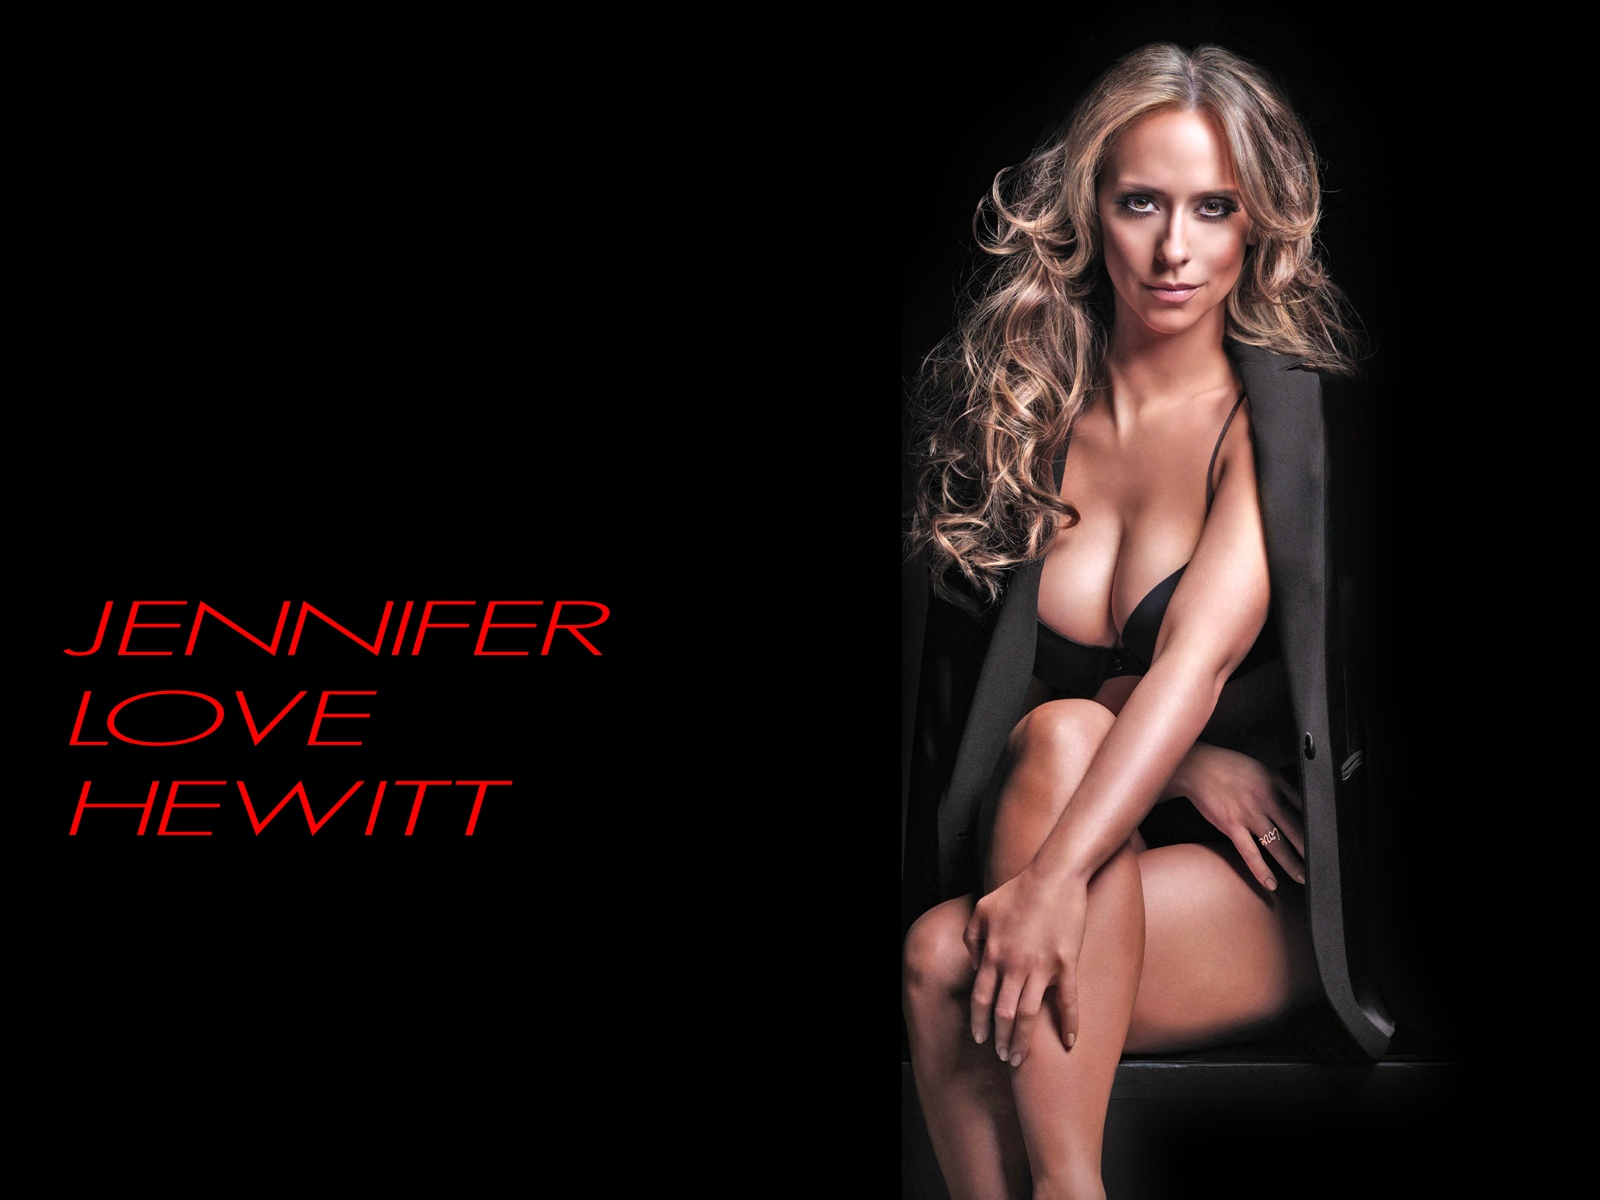 Wallpaper For Hot Love : Jennifer Love Hewitt Hot and Sexy Wallpapers 1600 and 1920-02 - Gotceleb